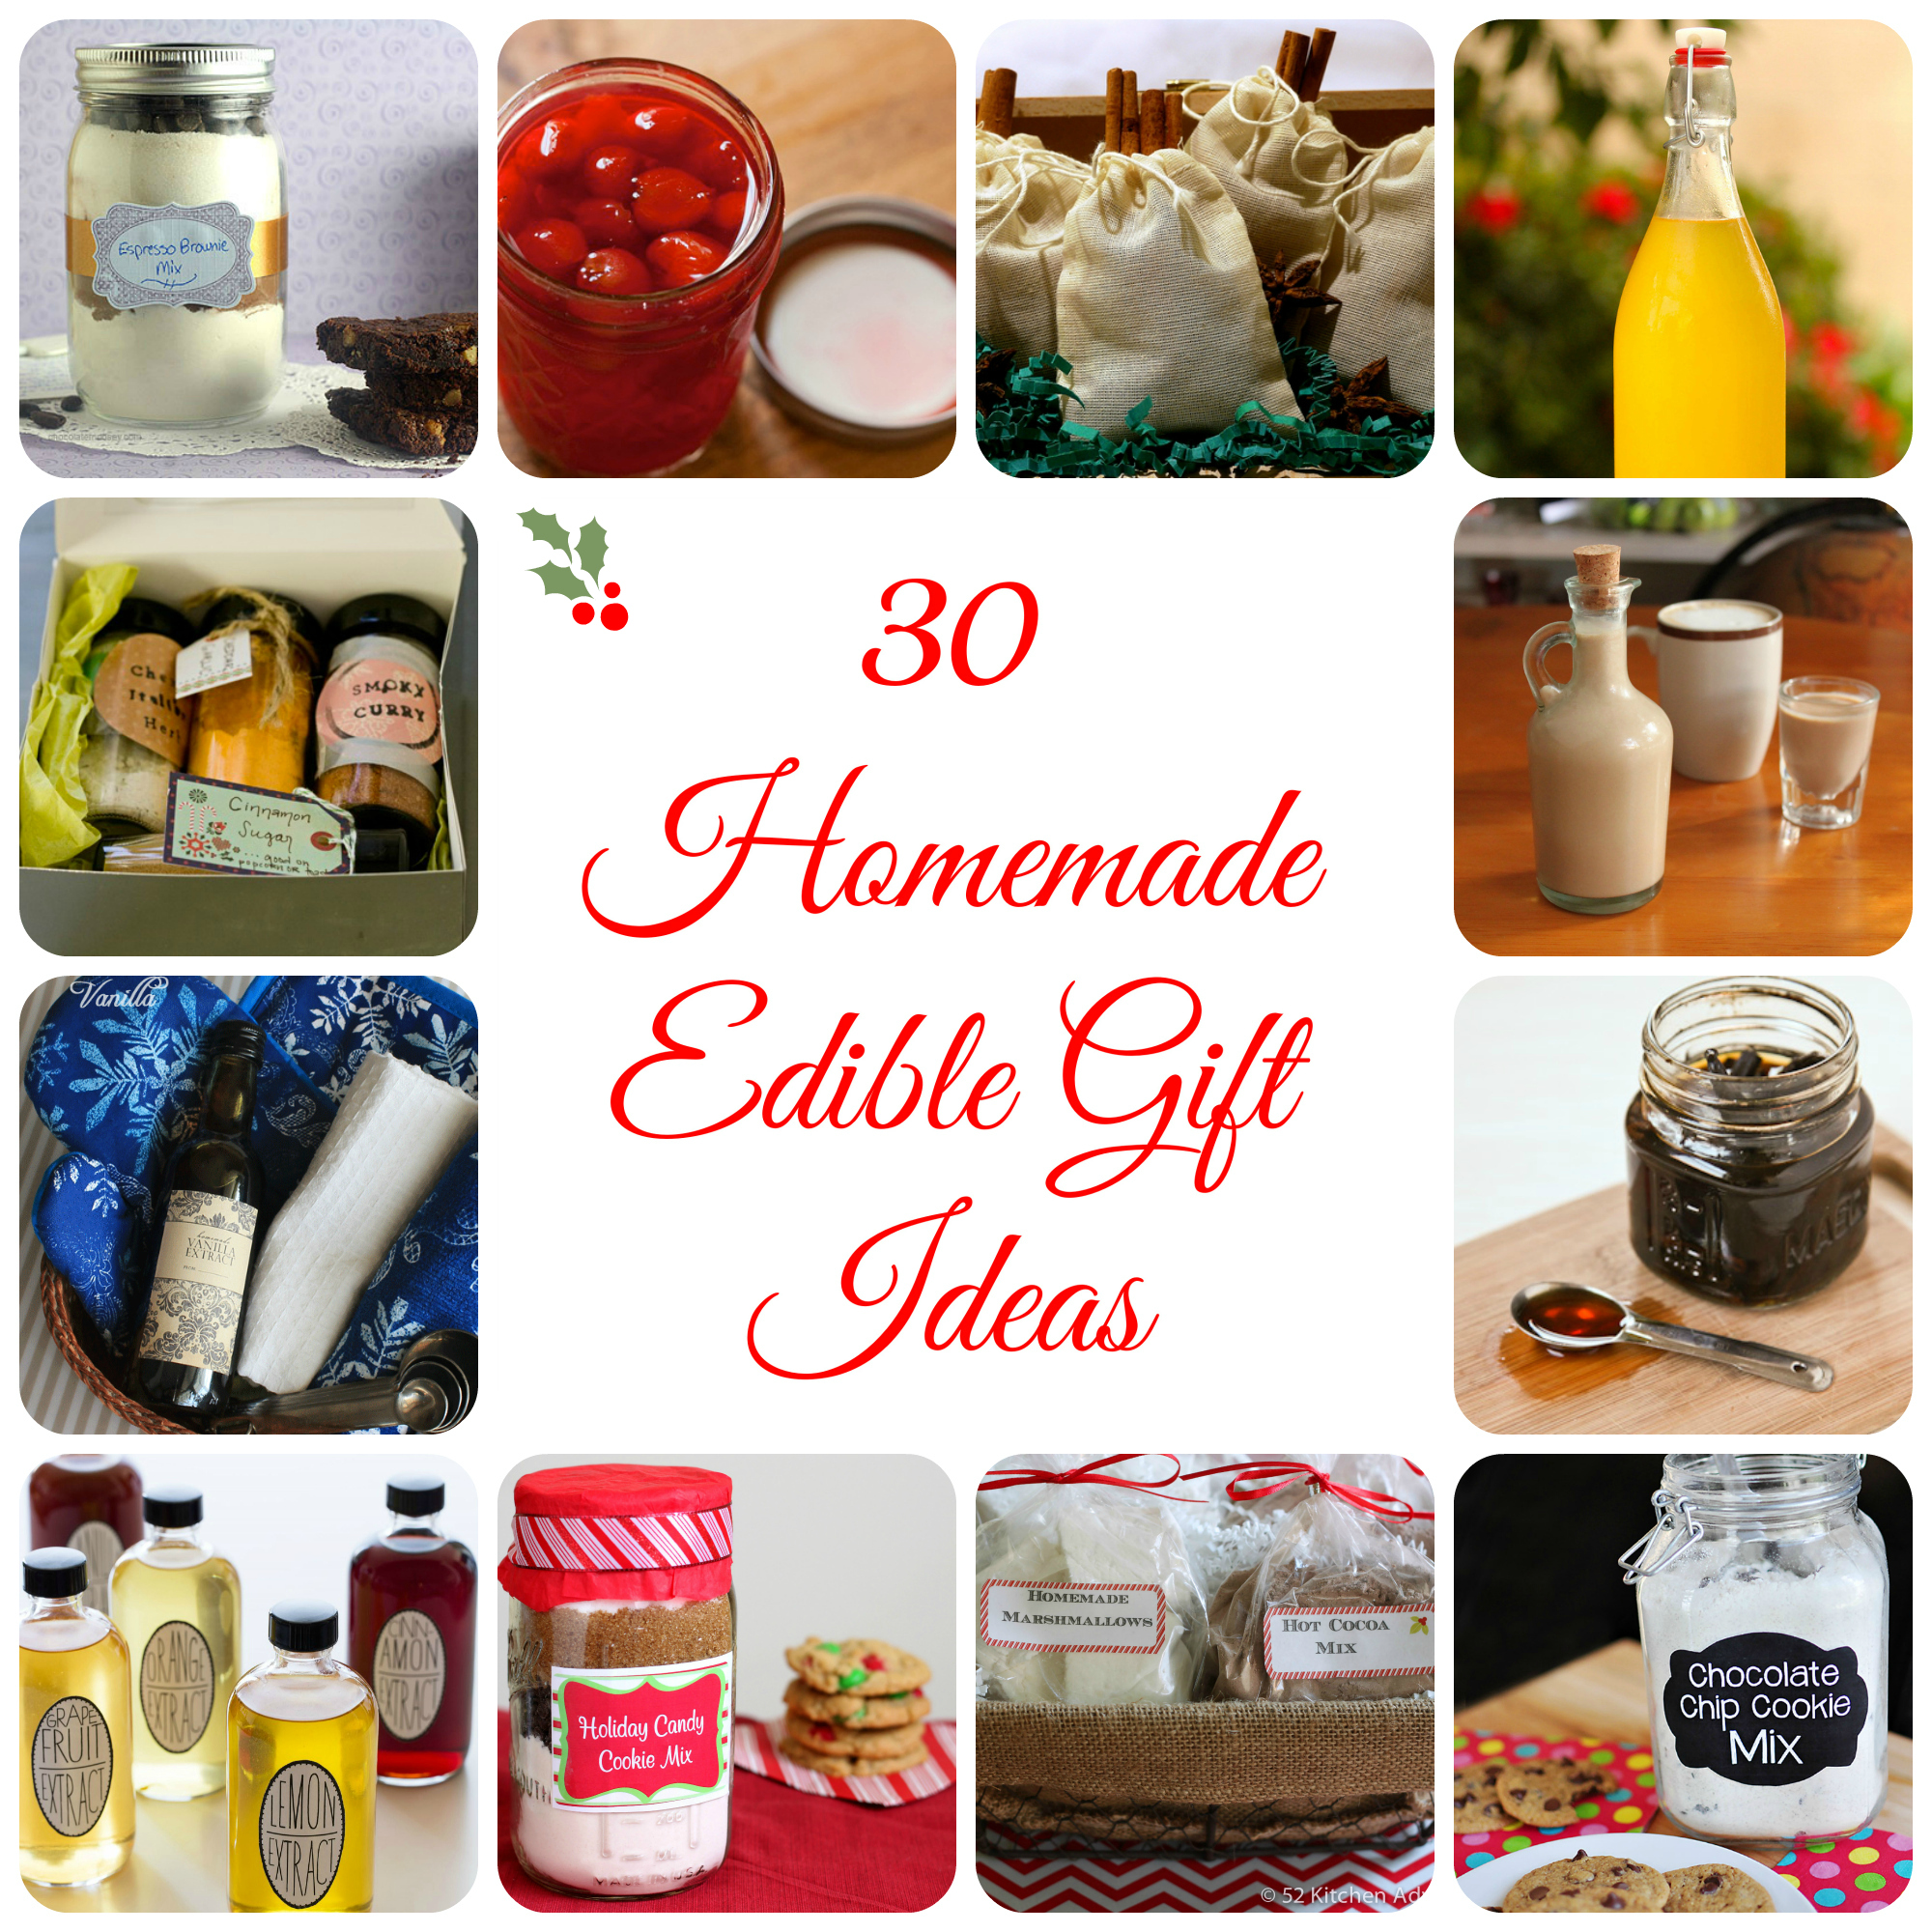 30 Homemade Edible Gift Ideas | 52 Kitchen Adventures